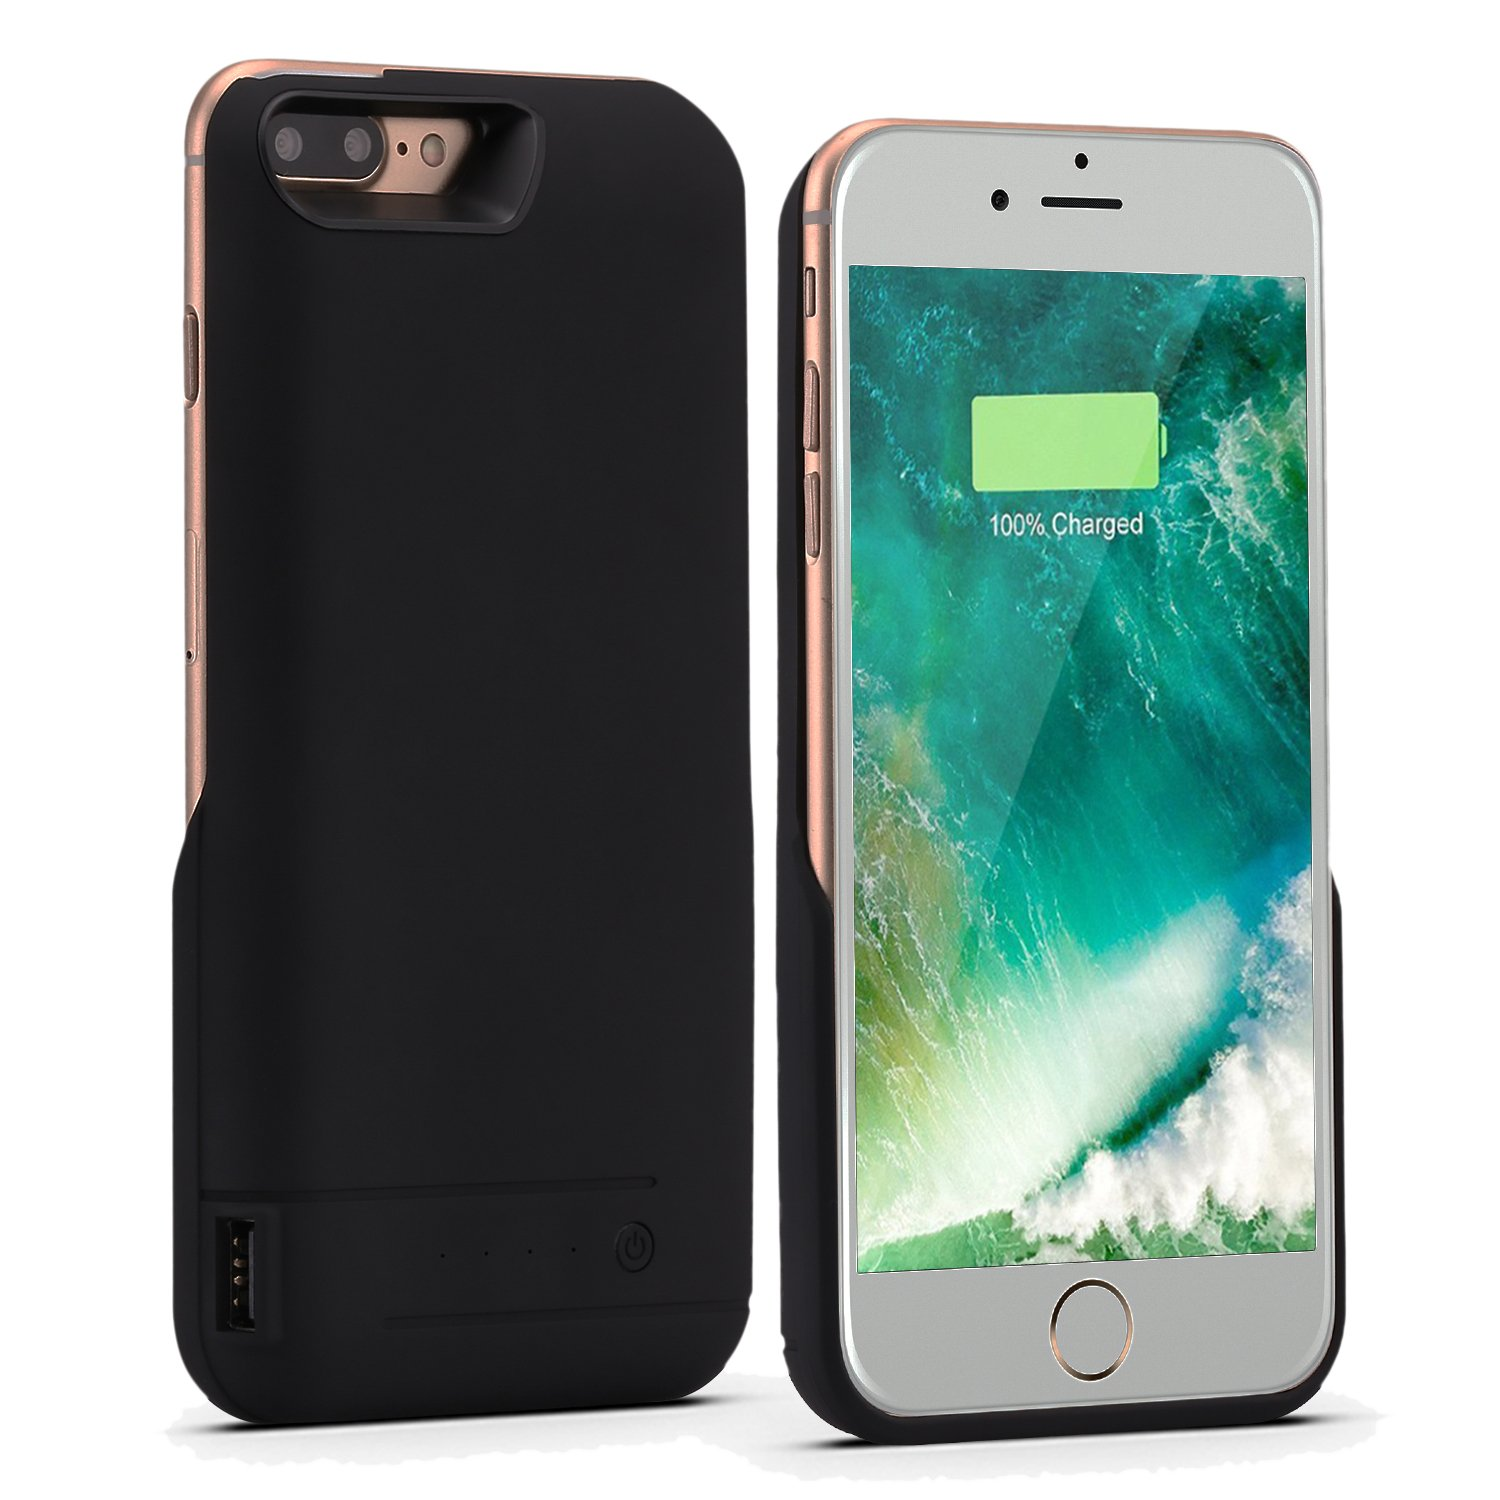 iphone 7 plus battery case pemotech 8200mah iphone portable charger ultra ebay. Black Bedroom Furniture Sets. Home Design Ideas